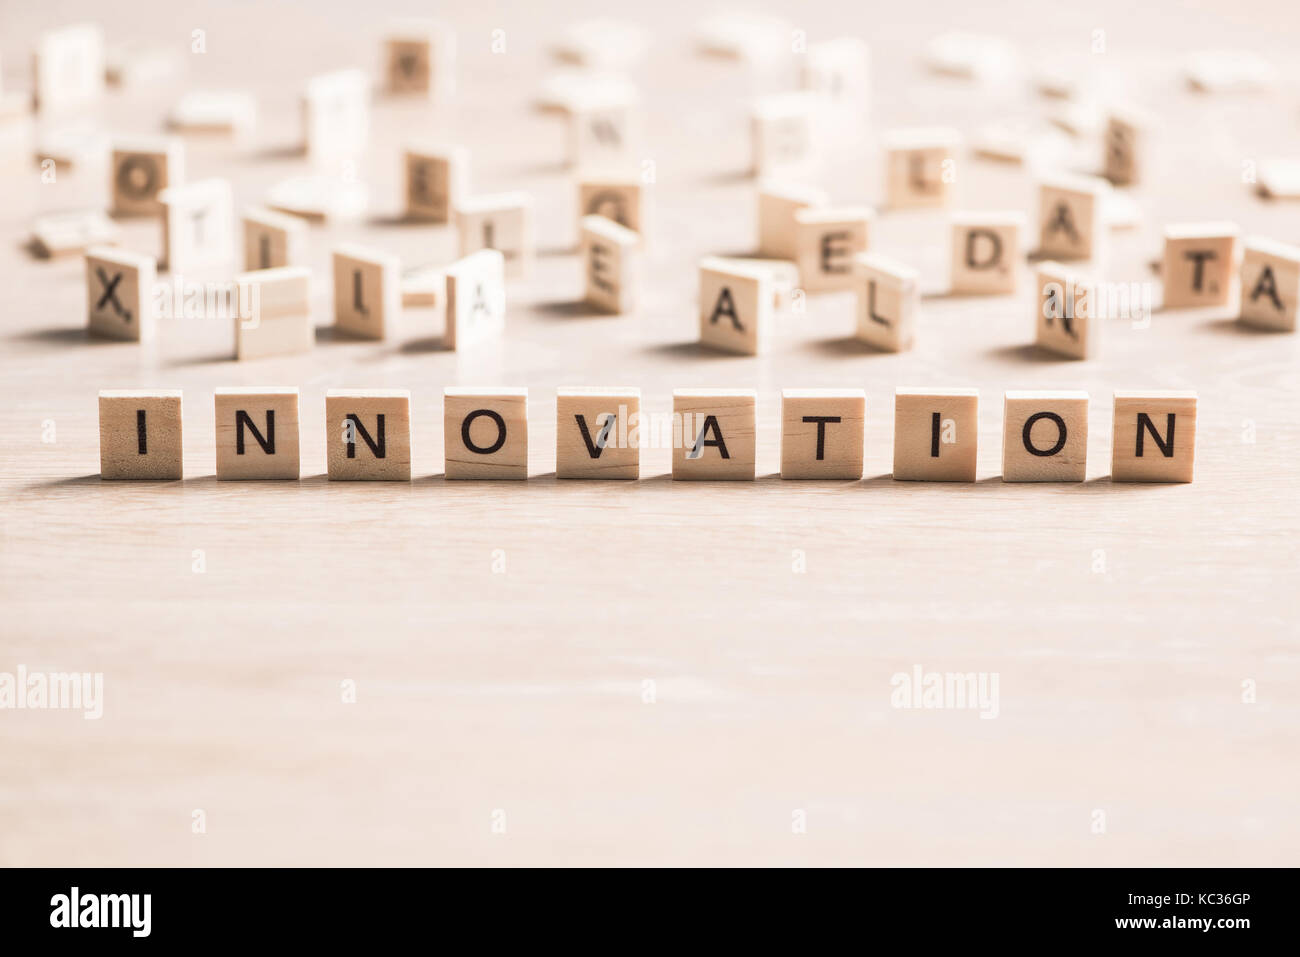 Innovation scrabble Word Stockbild